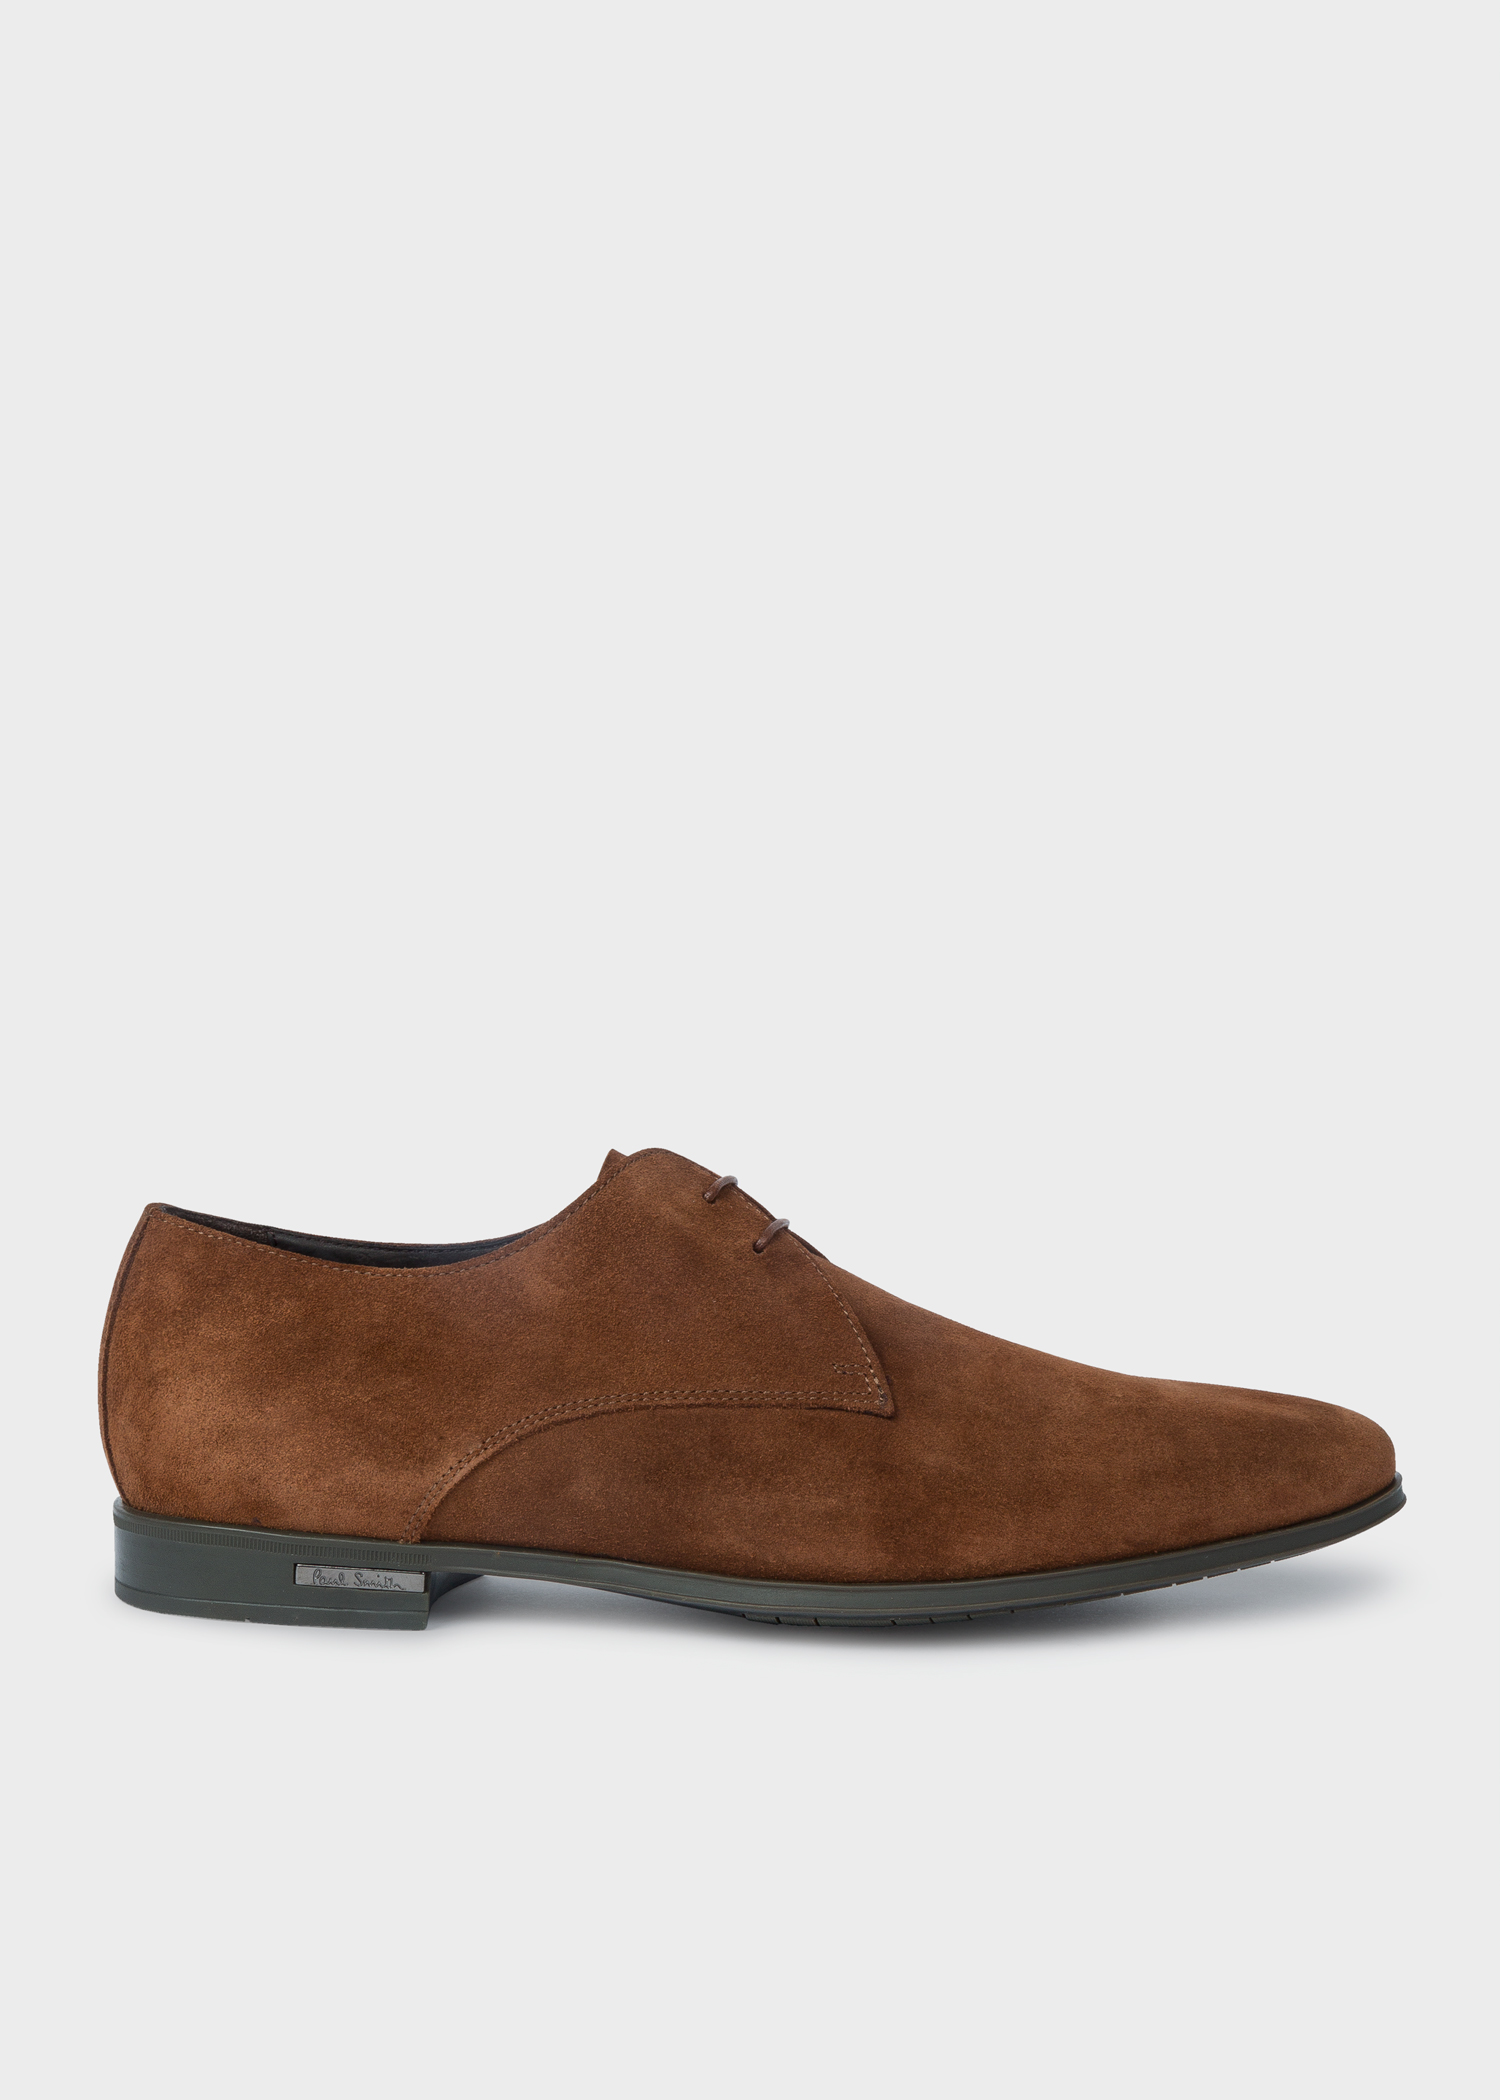 0f2cdd3b872b6 'coney' Paul Men's Tan Derby Shoes Smith Suede qxa0XaZE